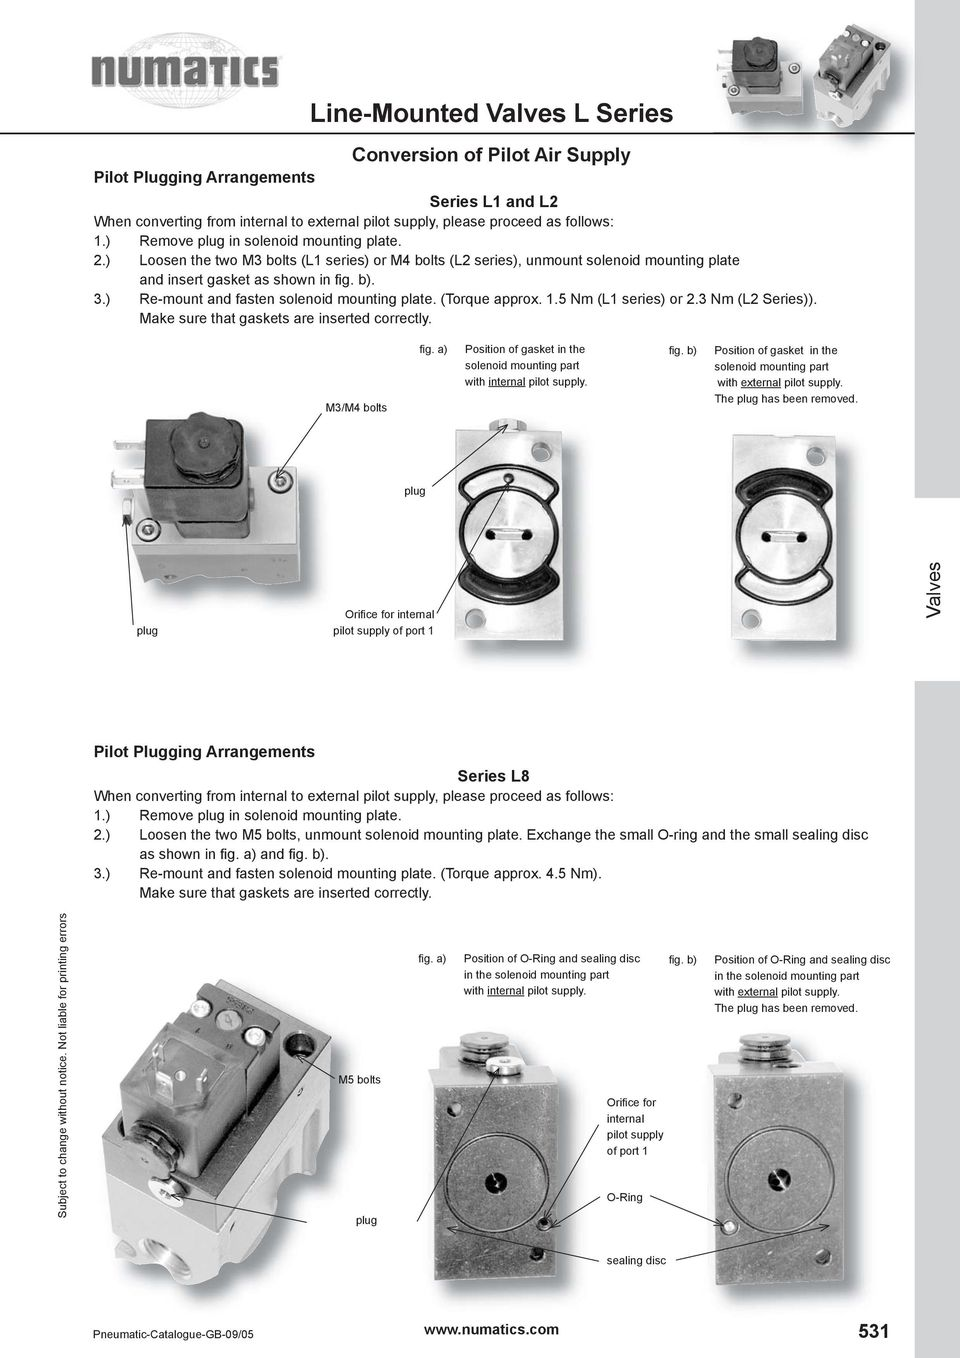 ) Re-mount and fasten solenoid mounting plate. (Torque approx. 1.5 Nm (L1 series) or 2.3 Nm (L2 Series)). Make sure that gaskets are inserted correctly. M3/M4 bolts fi g.